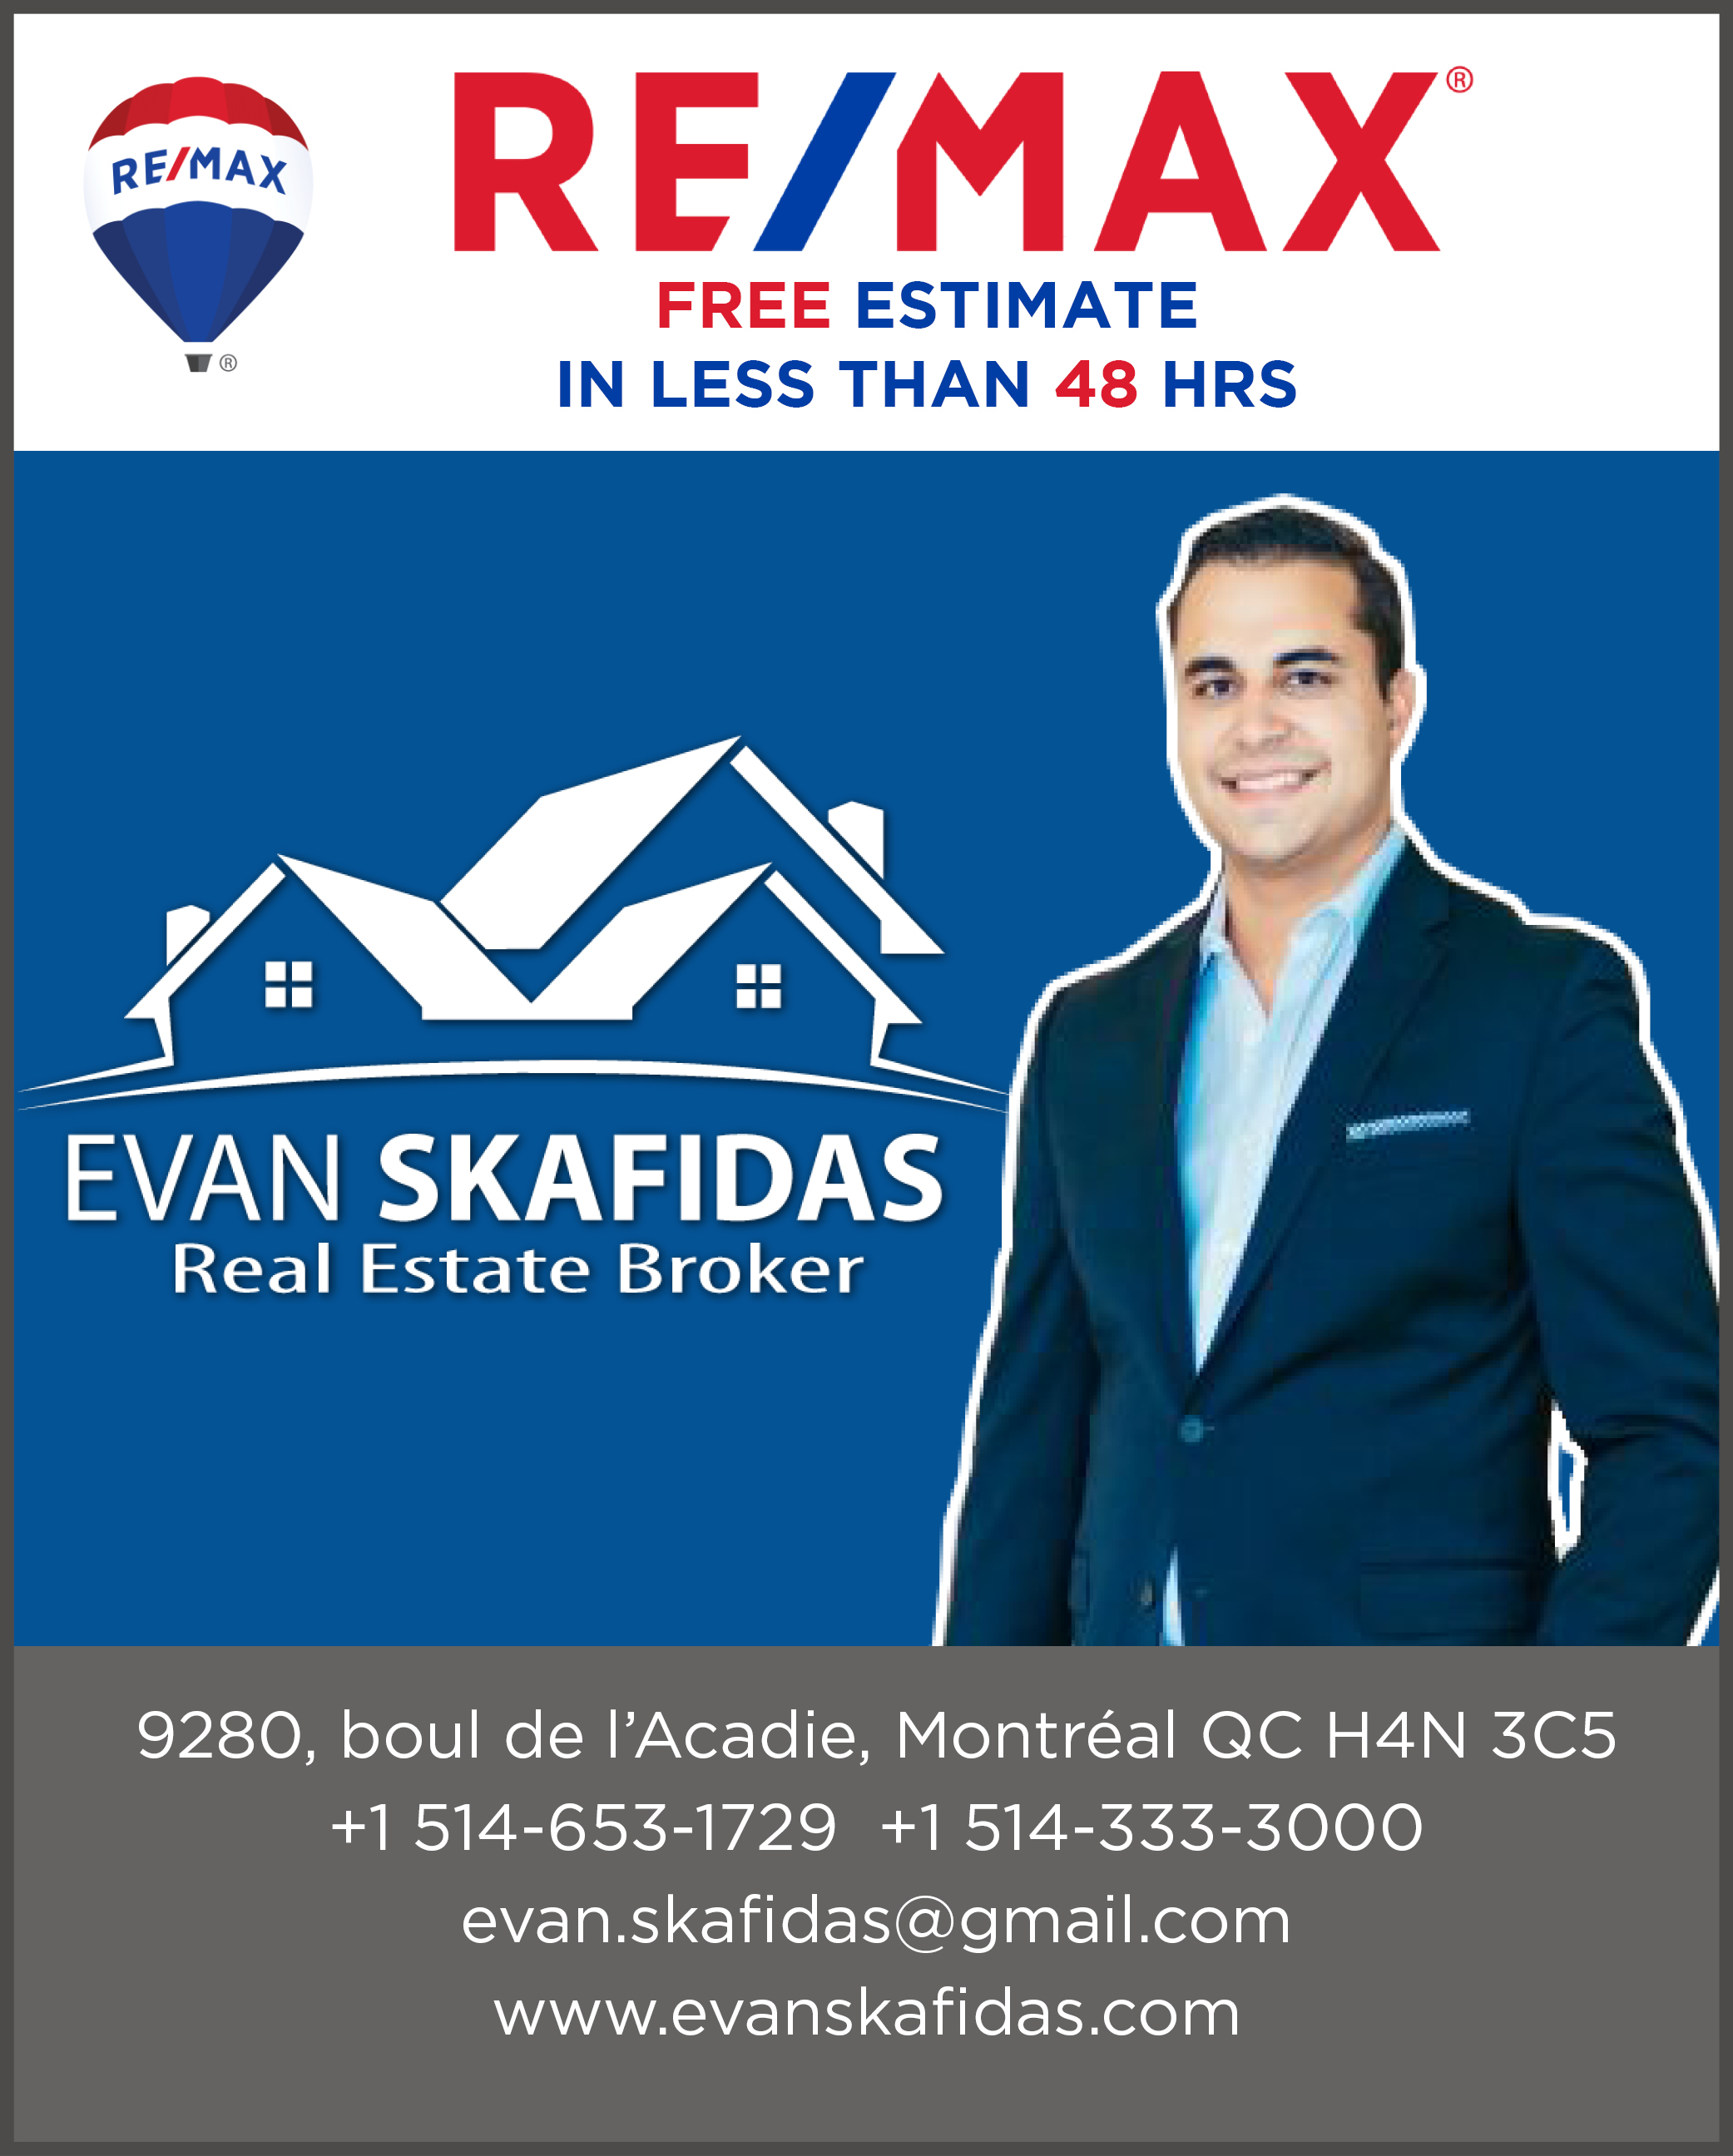 Evan Skafidas/ Remax